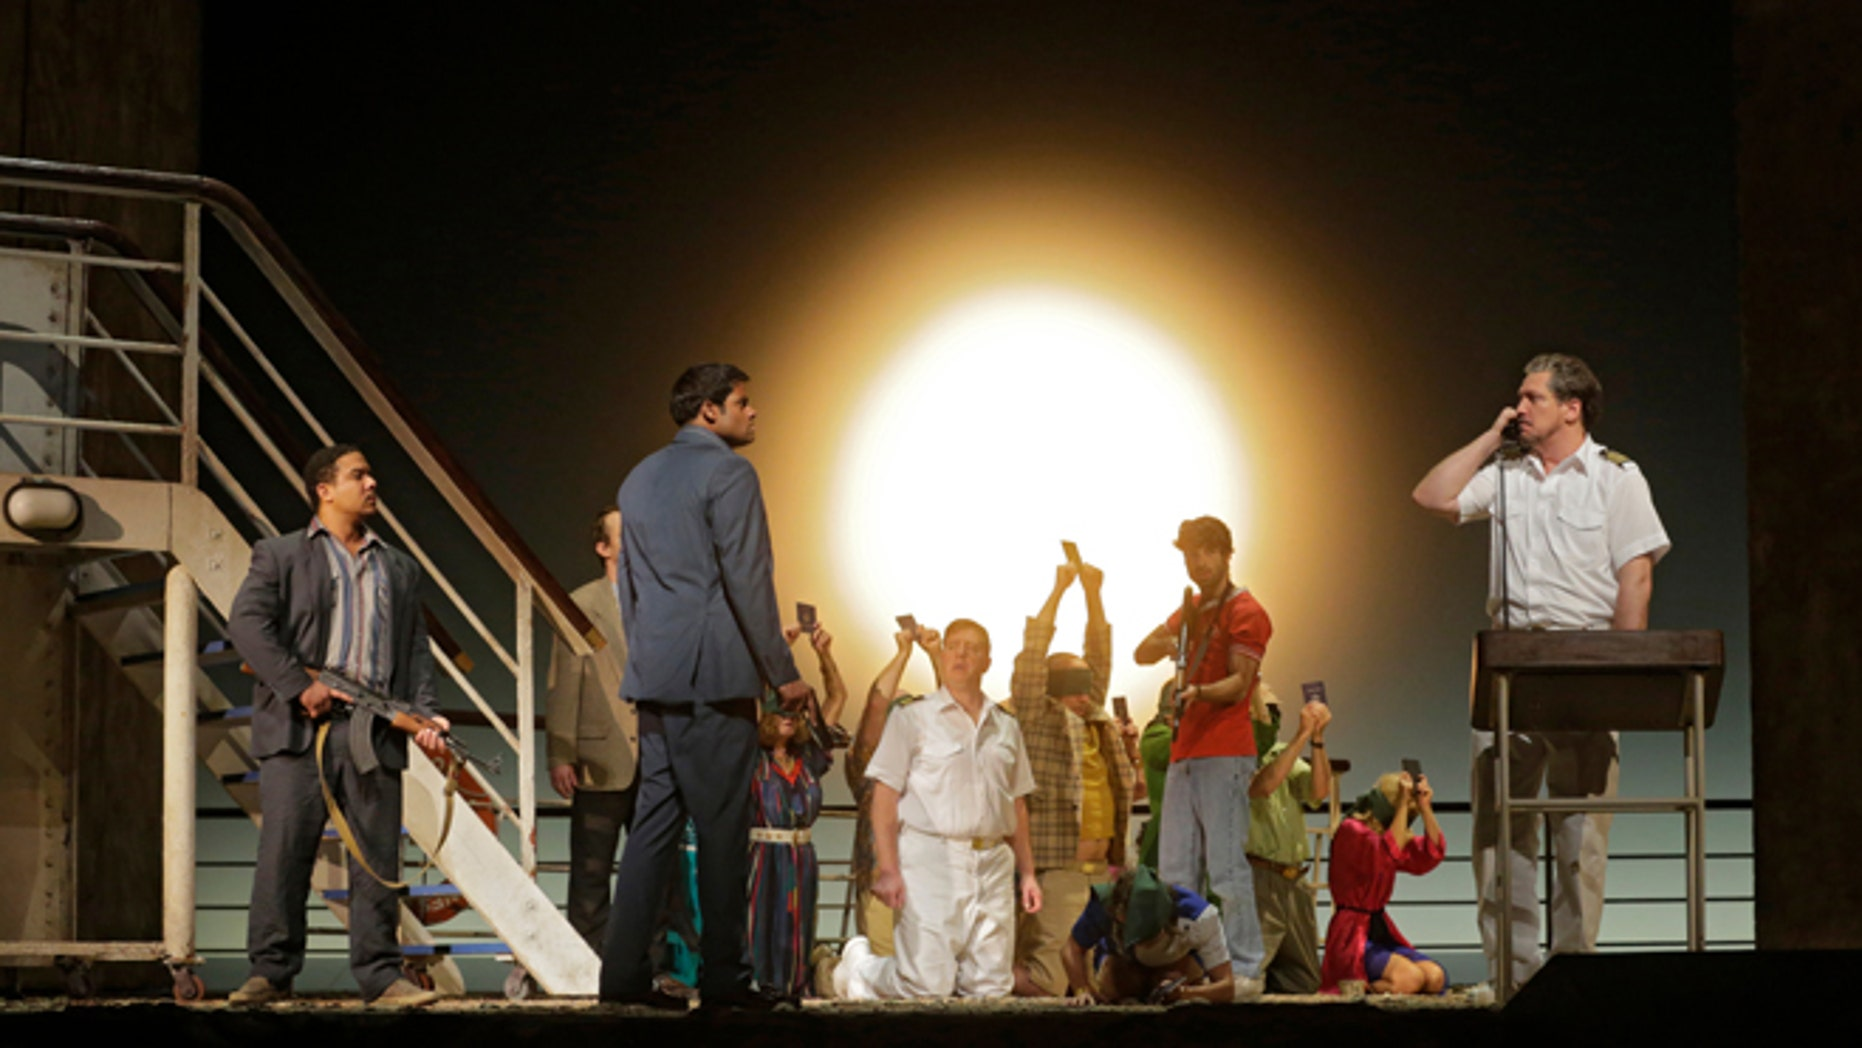 """In this image released by the Metropolitan Opera, Aubrey Allicock as Mamoud, foreground from left, Sean Pannikar as Molqui, and Paulo Szot as the Captain, perform with the cast in """"The Death of Klinghoffer,"""" at the Metropolitan Opera in New York."""